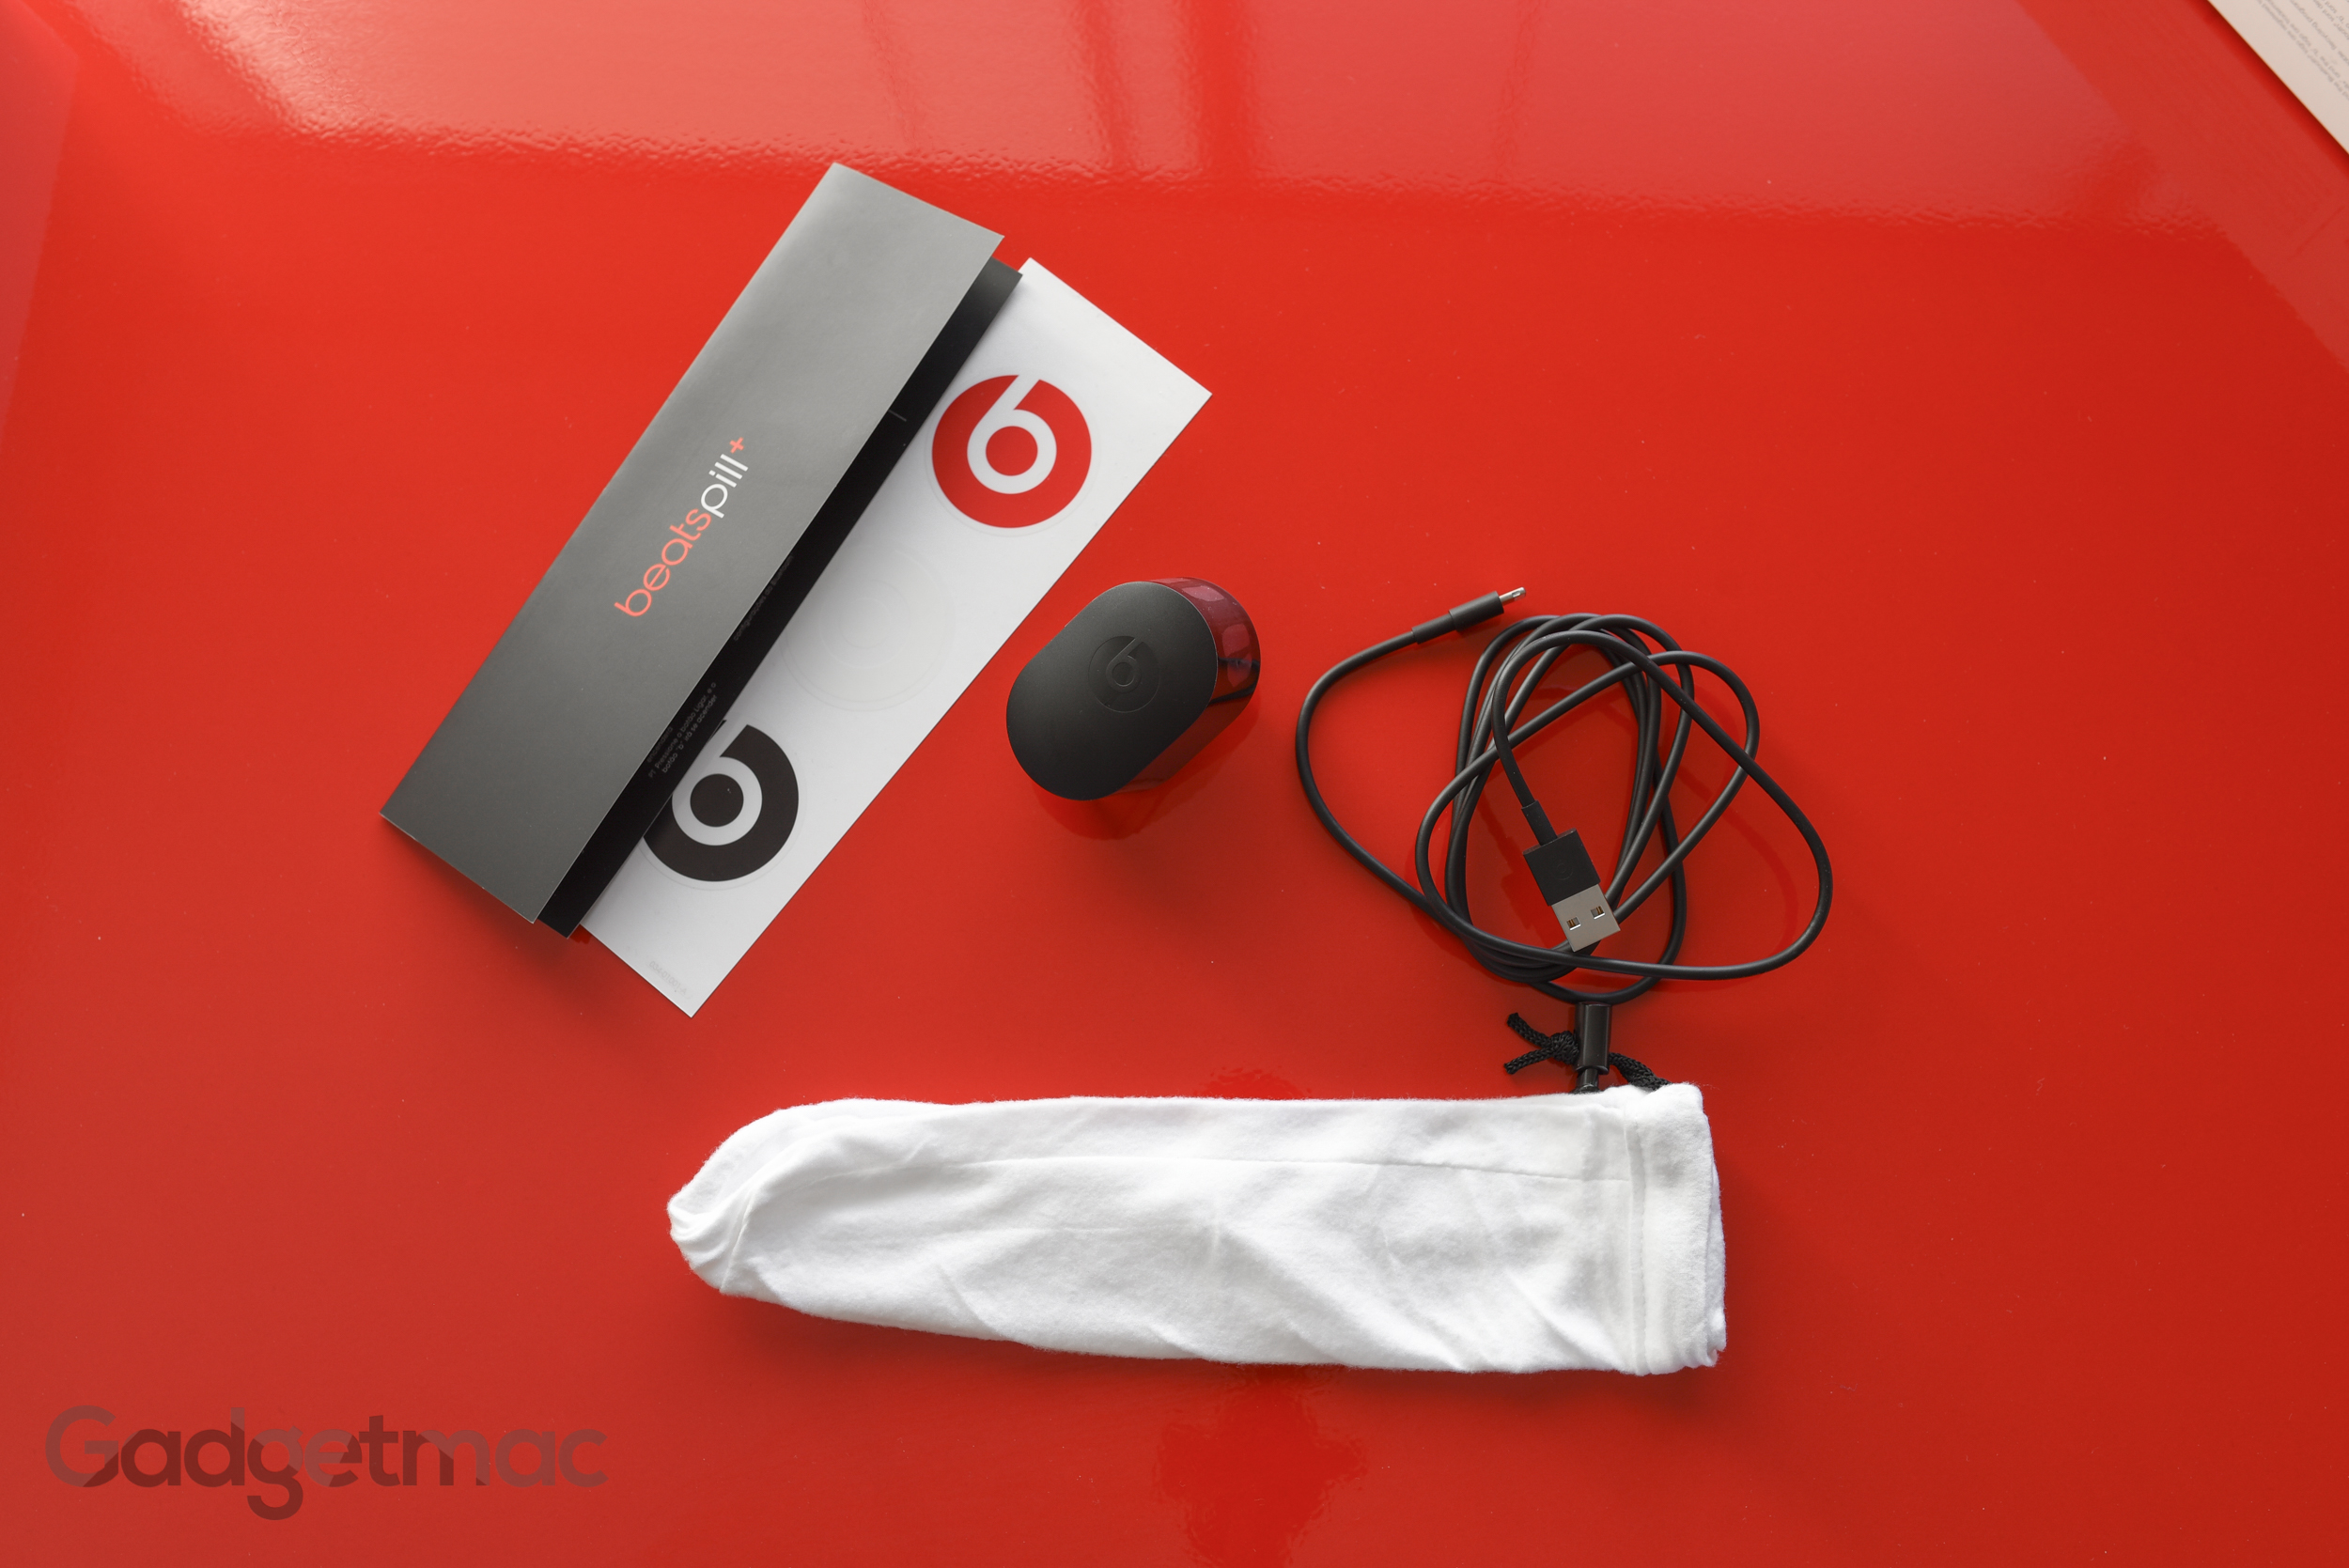 beats-pill-plus-included-accessories.jpg